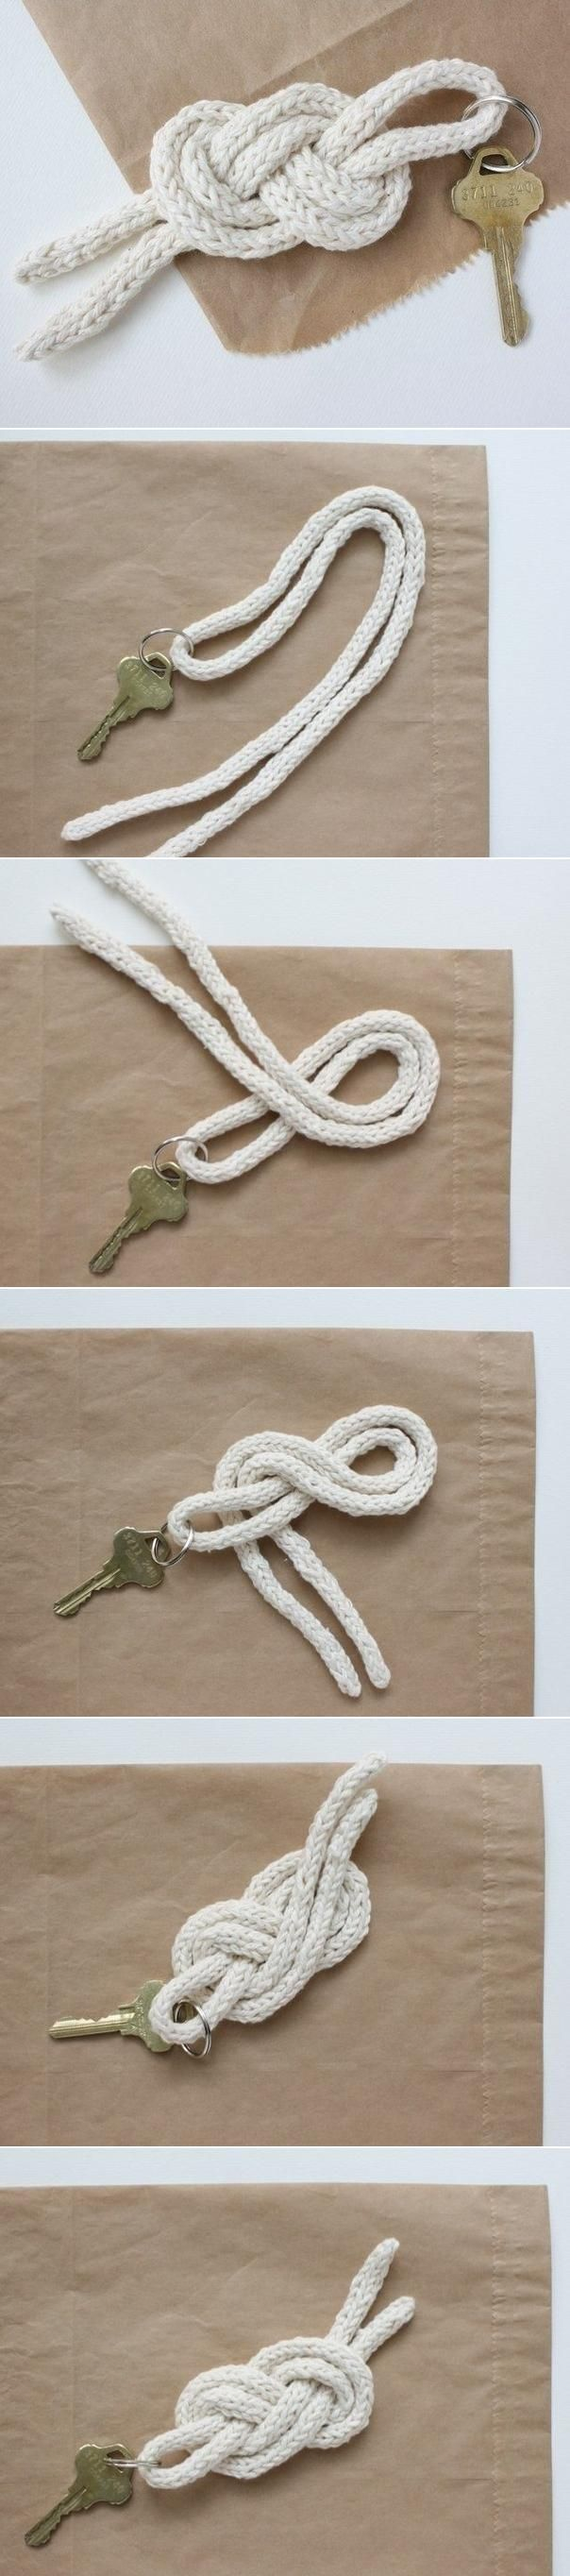 DIY Easy Knot Key Holder DIY Projects | UsefulDIY.com Follow us on Facebook…